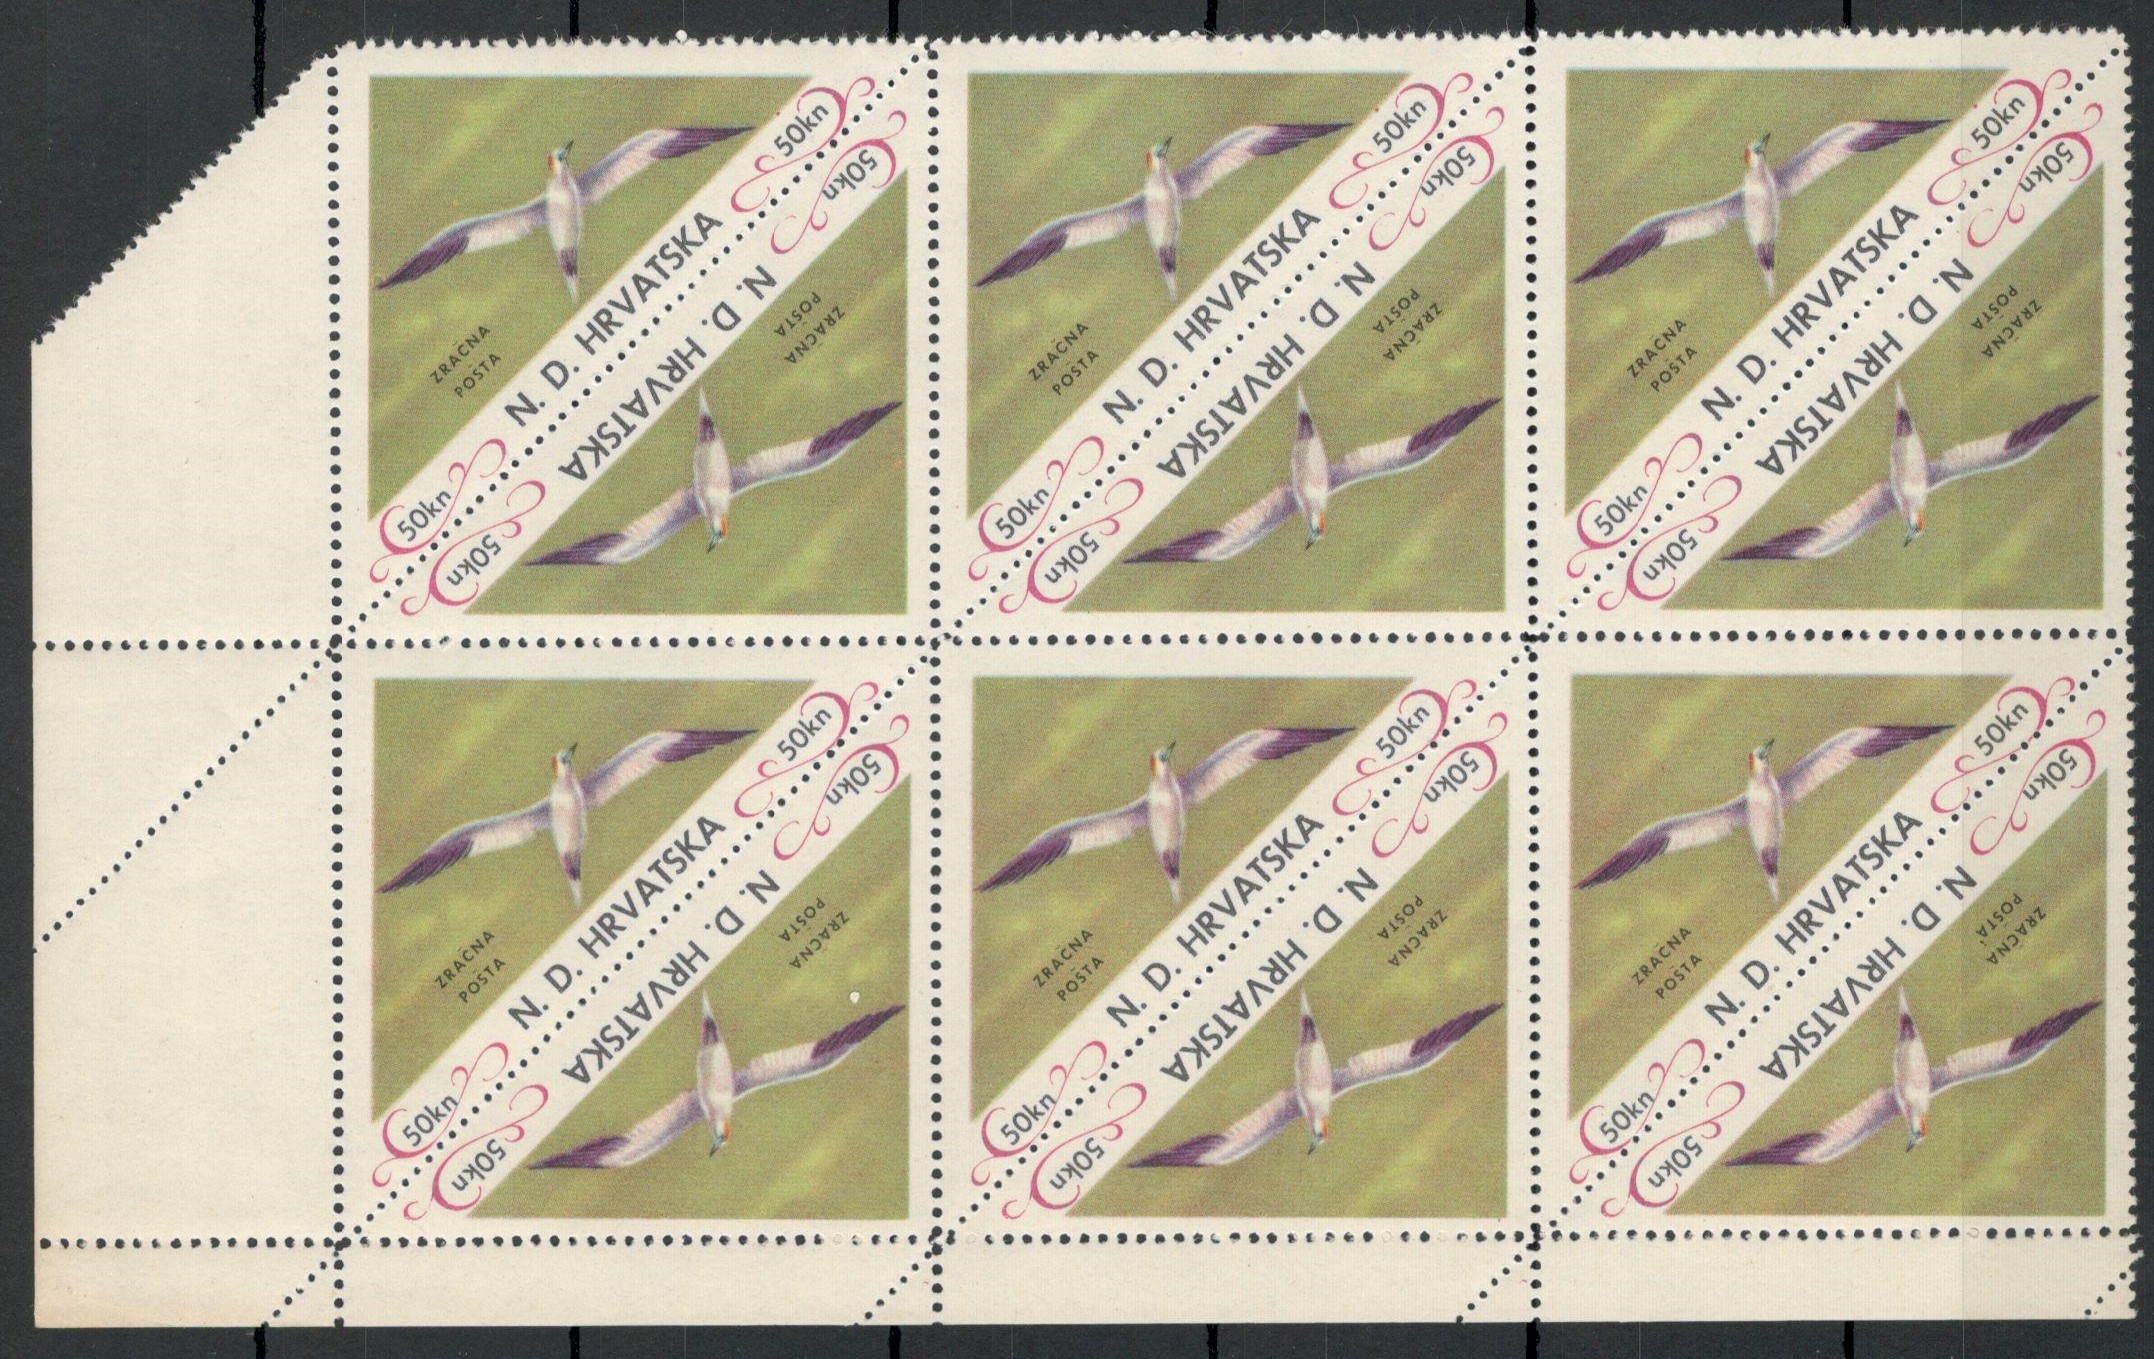 Lot 11 - CROATIAN EXILE STAMPS - BLOCKS OF SIX STAMPS SEMI-POSTAL FLOWERS & BIRDS (7)